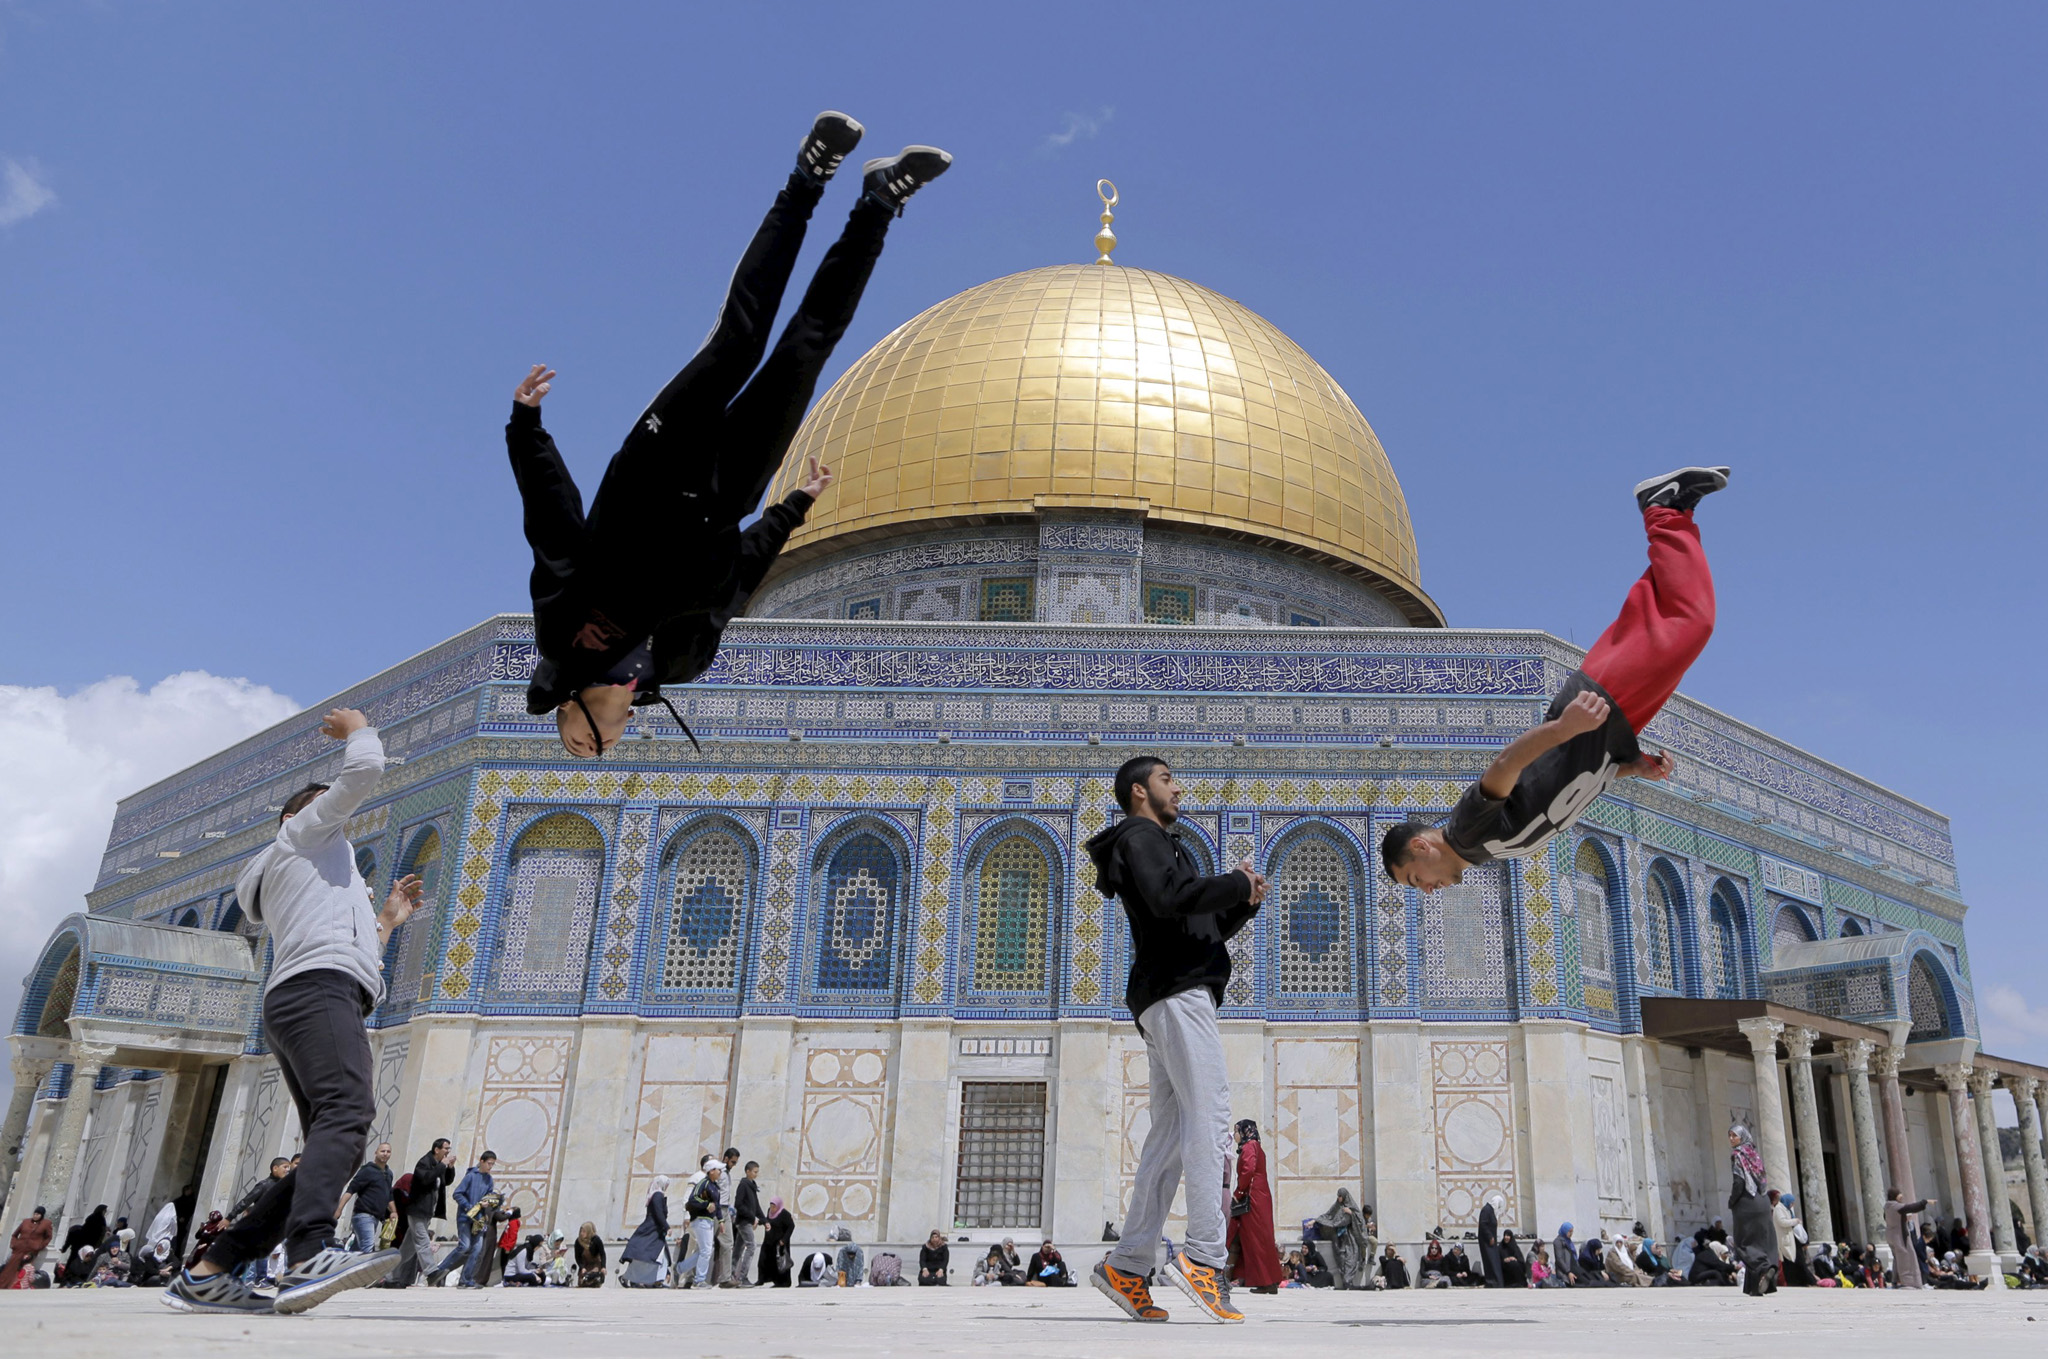 The Dome of the Rock is seen in the background as Palestinian youths practice their parkour skills during Friday prayers in Jerusalem's Old City.